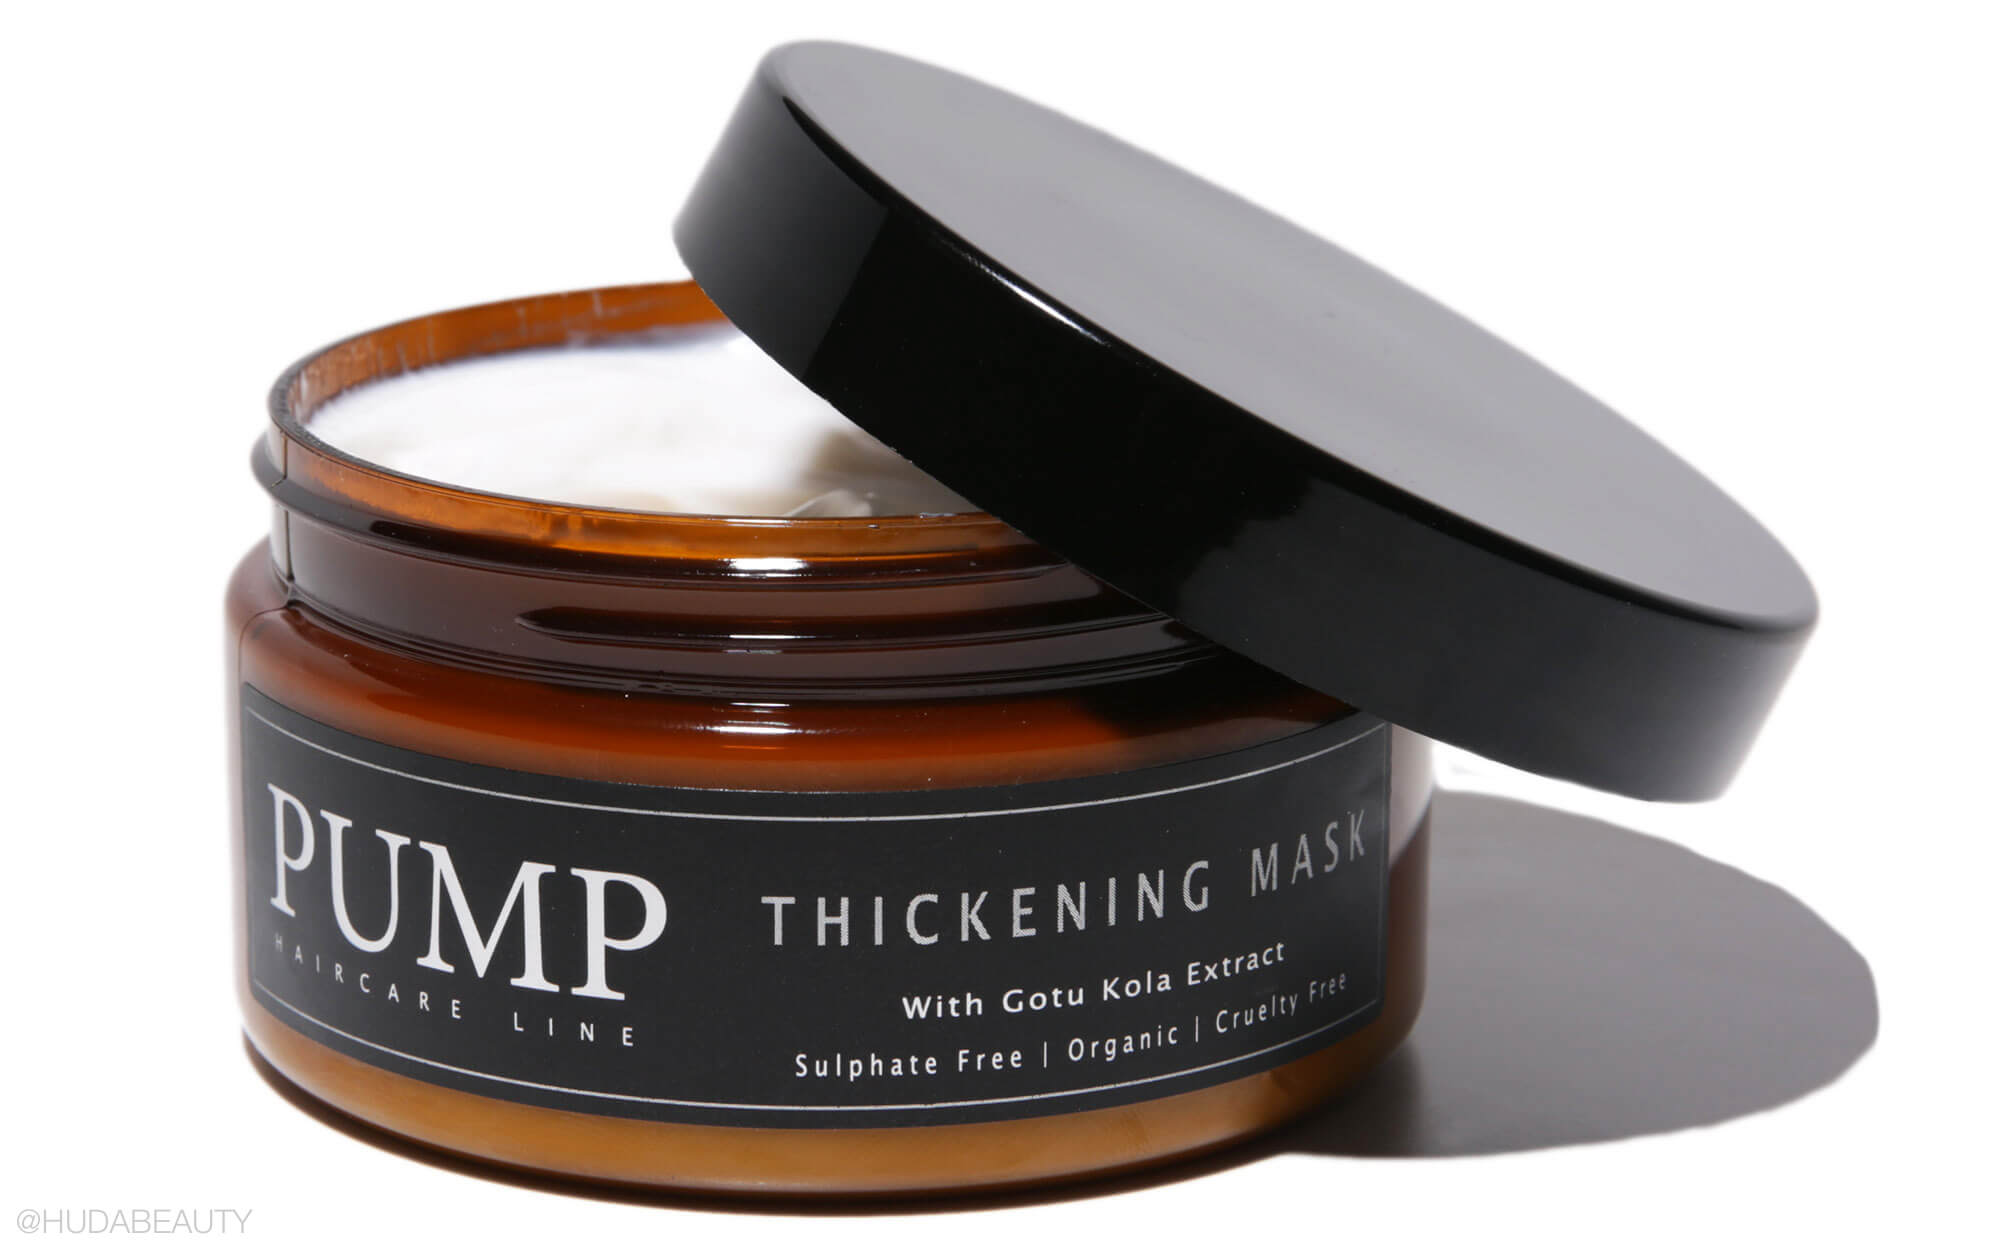 Pump Thickening Mask